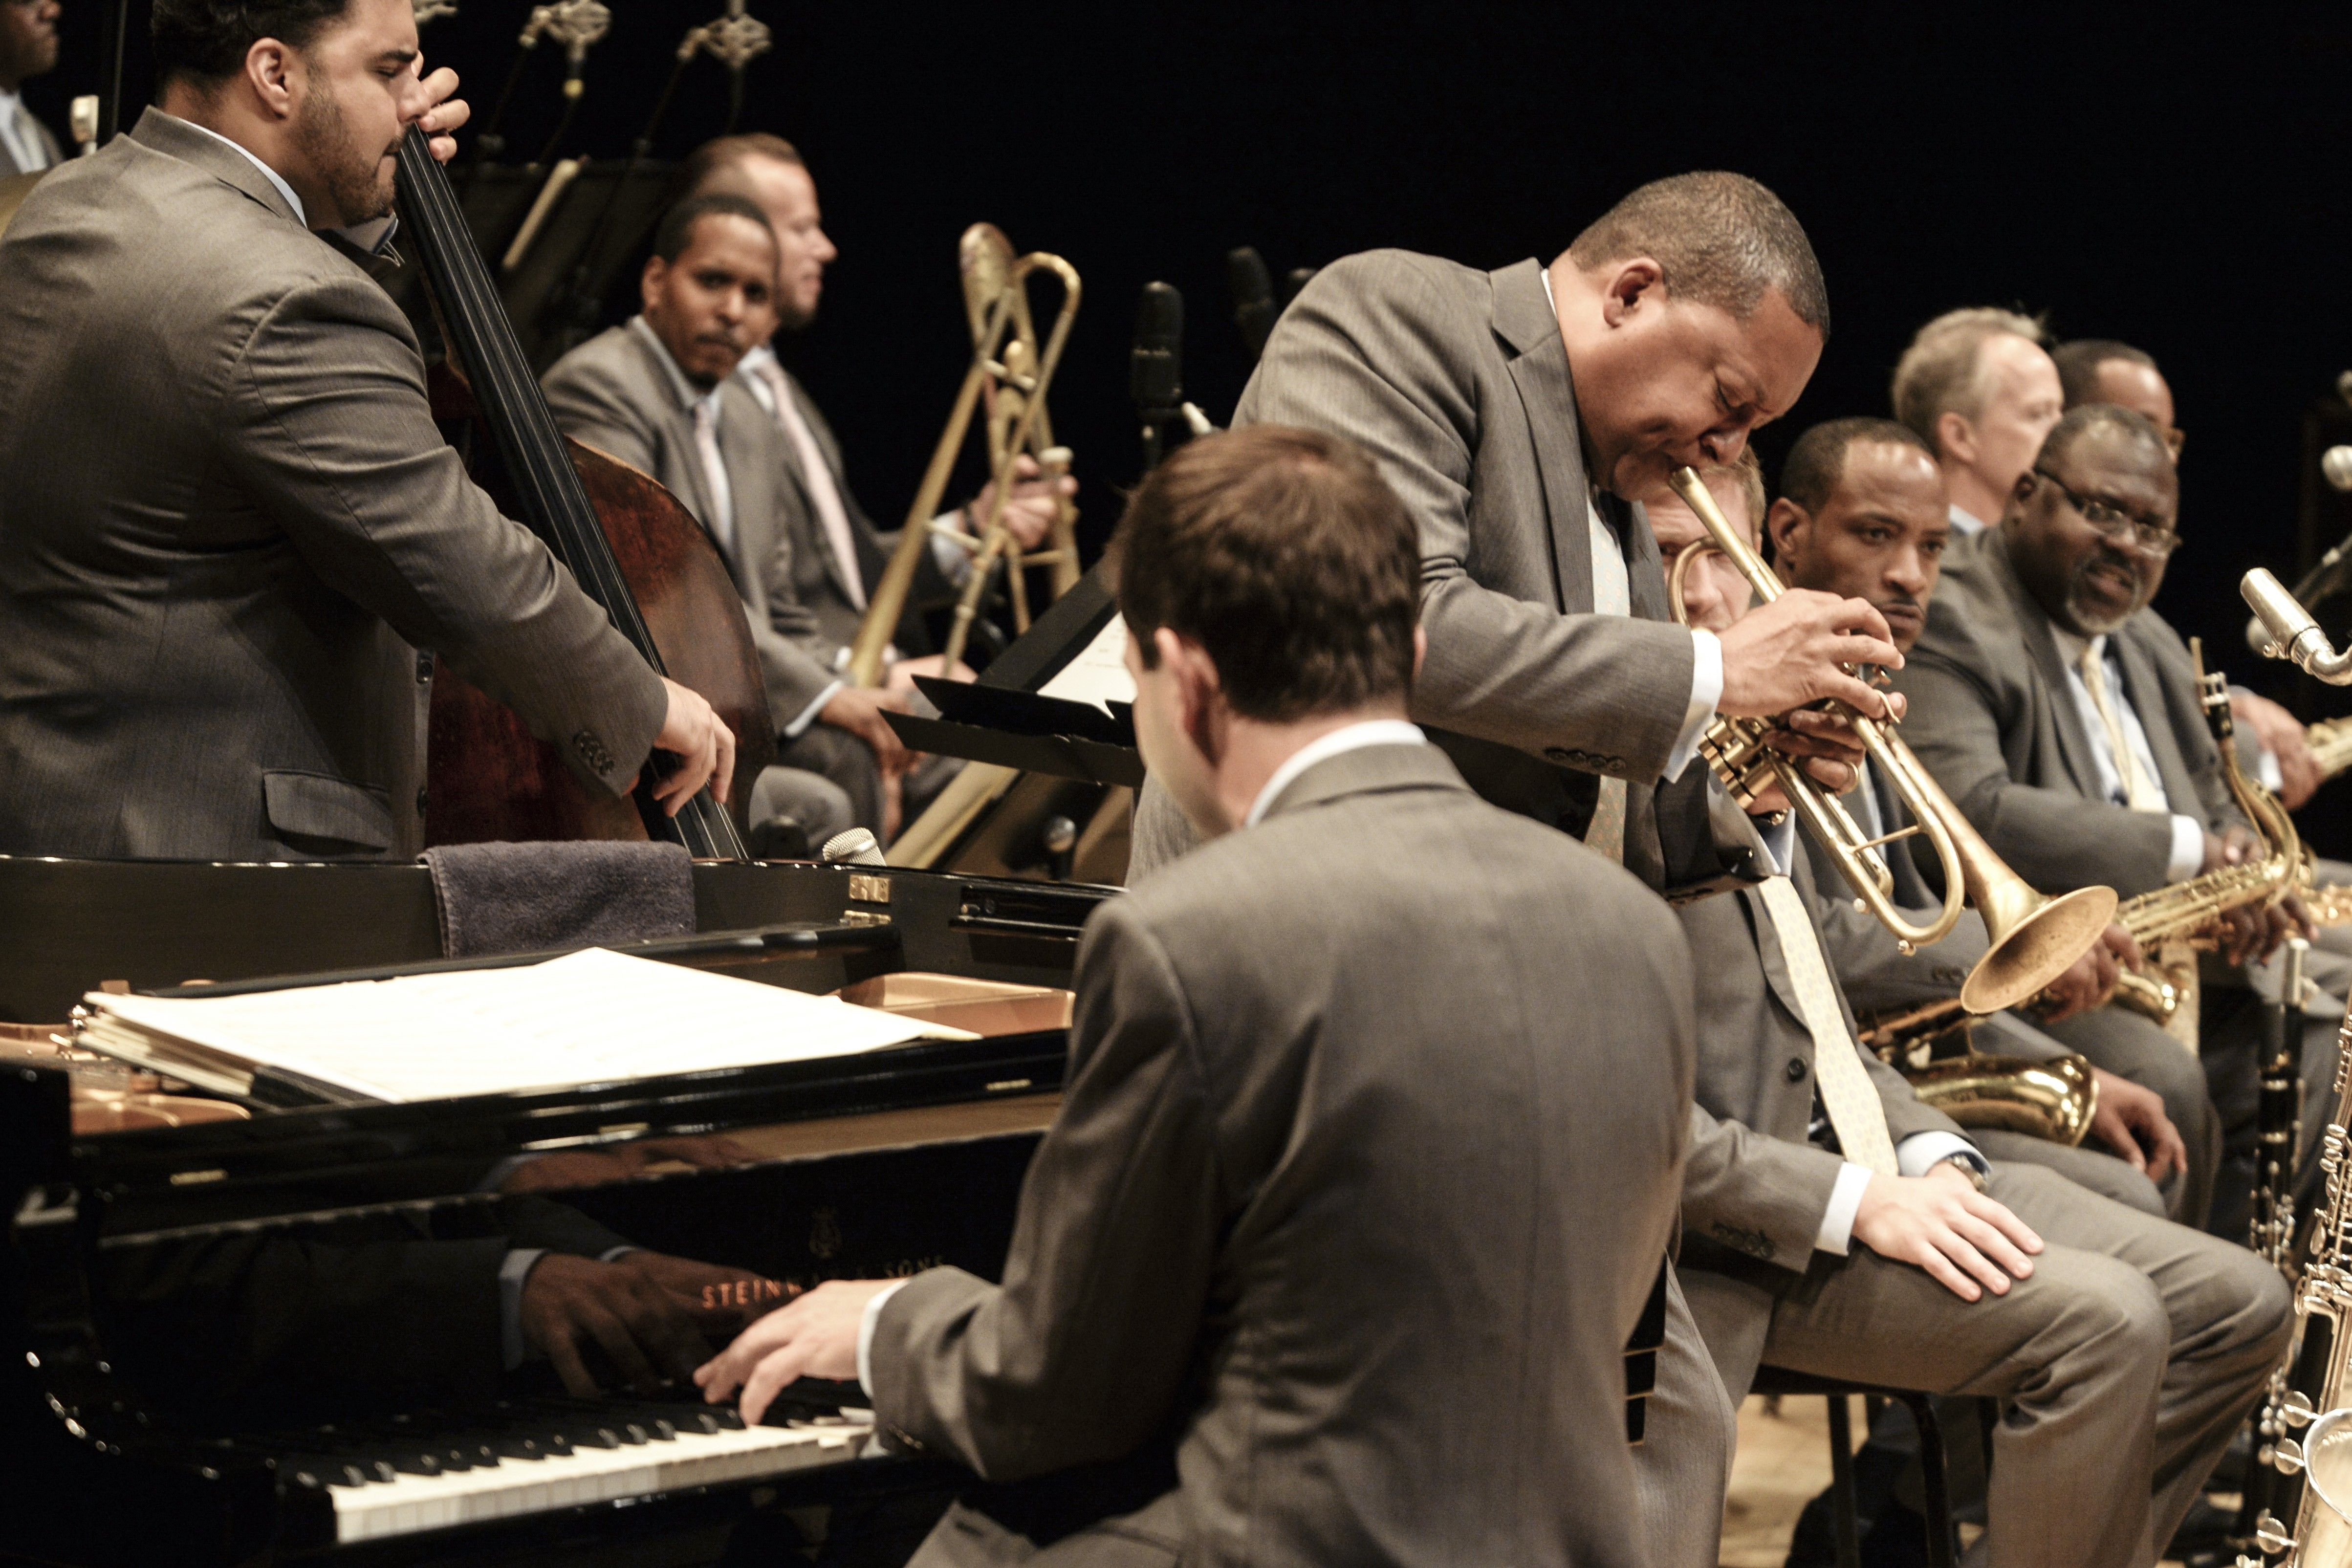 The birthplace of jazz still churns out artists. Learn what makes this style of music so classic and everlasting.